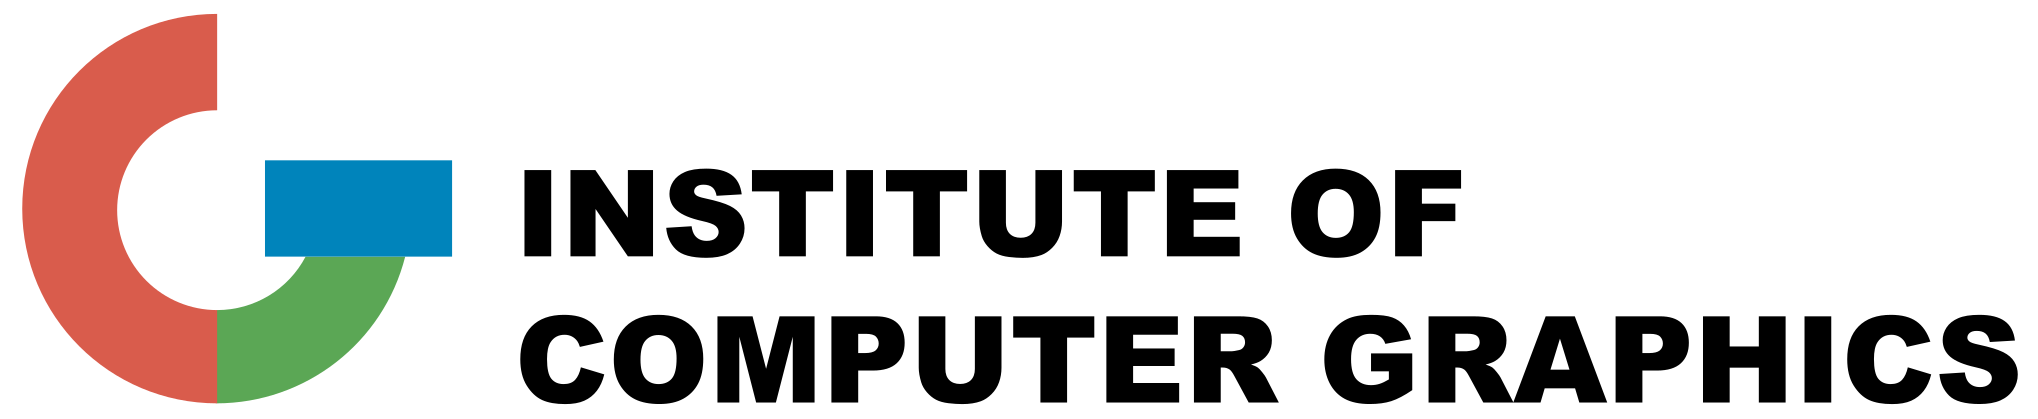 https://www.jku.at/en/institute-of-computer-graphics/